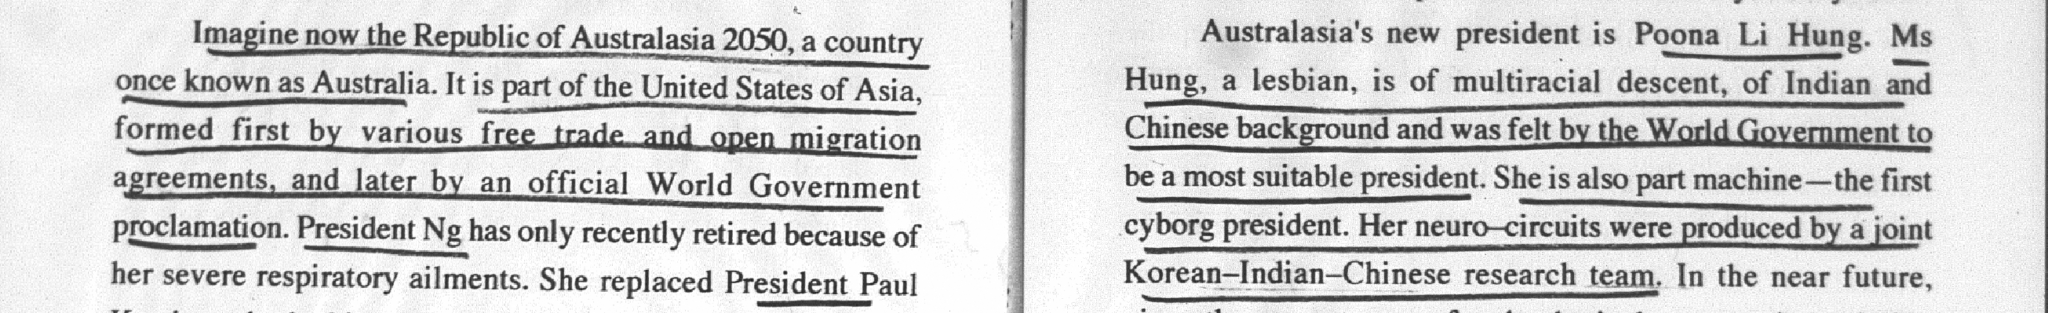 "Snippets from Hanson's 1997 work The Truth. The first reads, ""Imagine now the Republic of Australasia 2050, a country once known as Australia. It is part of the United States of Asia, formed first by various free trade and open migration agreements, and later by an official World Government proclamation. President Ng has only recently retired because of her severe respiratory ailments. She replaced President Paul Keating."" The second reads: ""Australasia's new President is Poona Li Hung. Ms Hung, a lesbian, is of multiracial descent, of Indian and Chinese background and was felt by the World Government to be a most suitable president. She is also part machine — the first cyborg president. Her neuro-circuits were produced by a joint Korean-Indian-Chinese research team."""